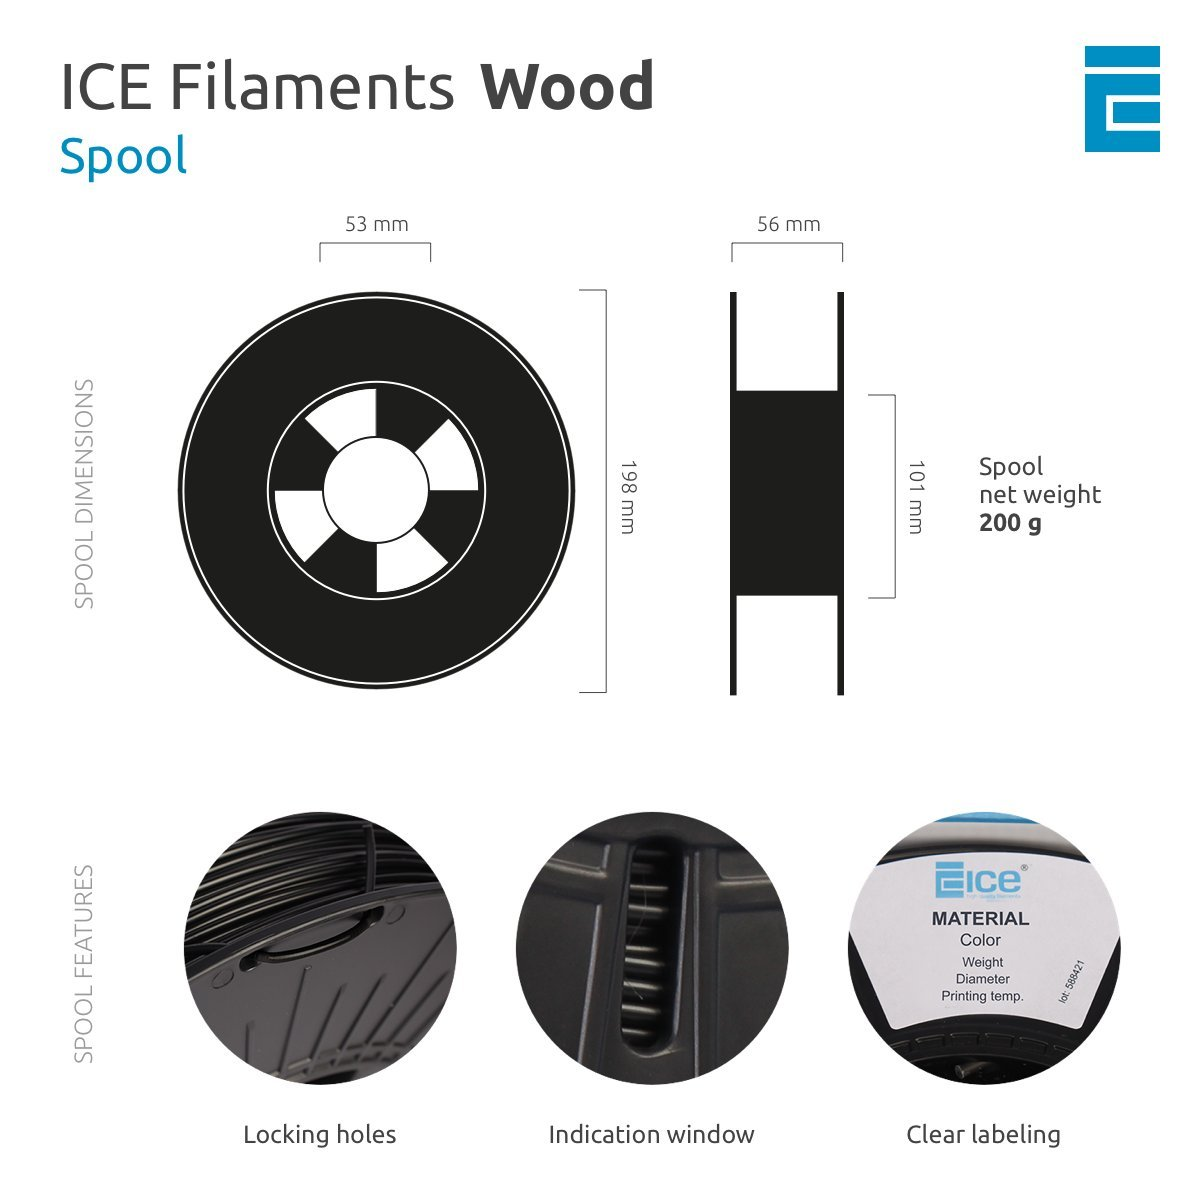 0.5 kg Marvelous Maple ICE Filaments ICEFIL3WOO209 filamento WOOD,2.85mm